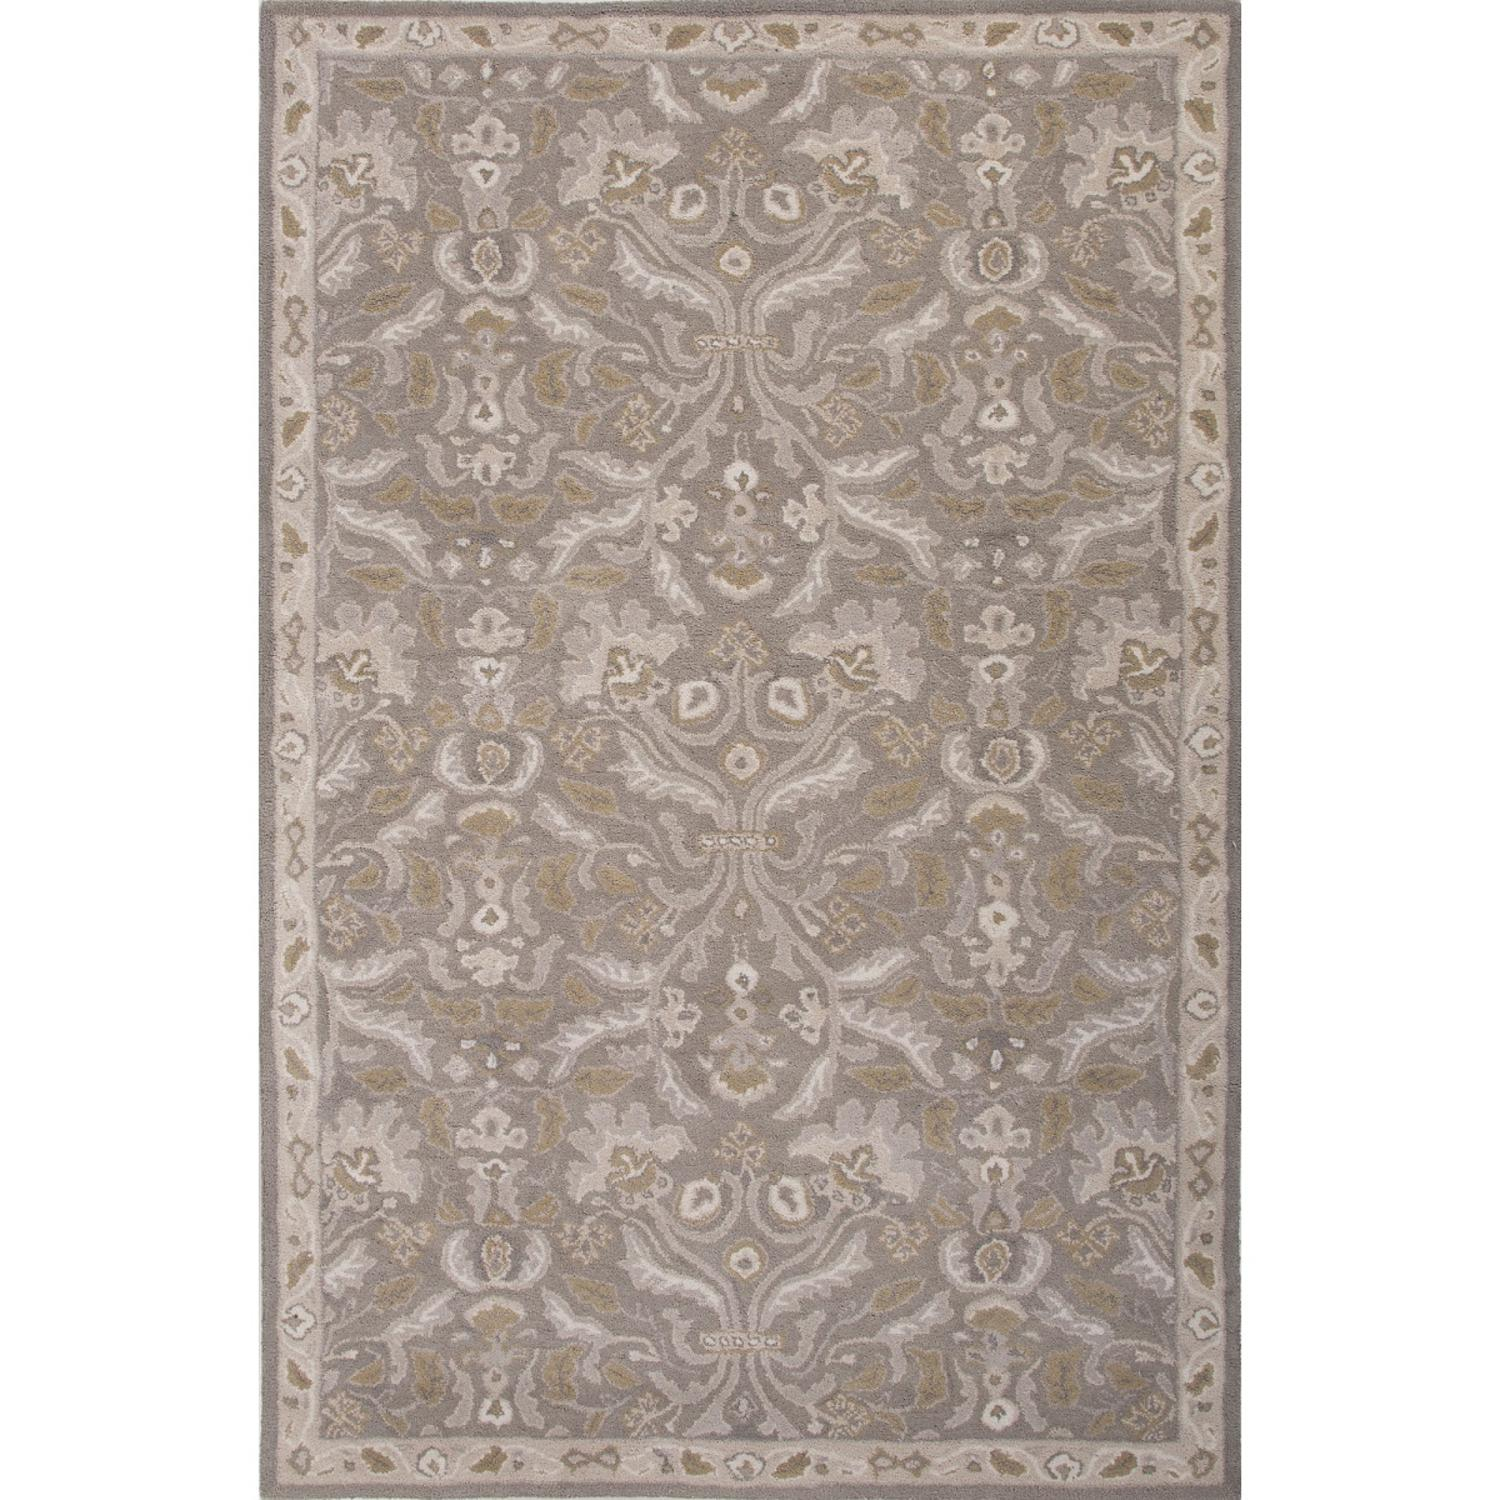 2' x 3' Stone Gray, Olive Yellow and Ash Gray Corsica Transitional Hand Tuft Wool Area Throw Rug